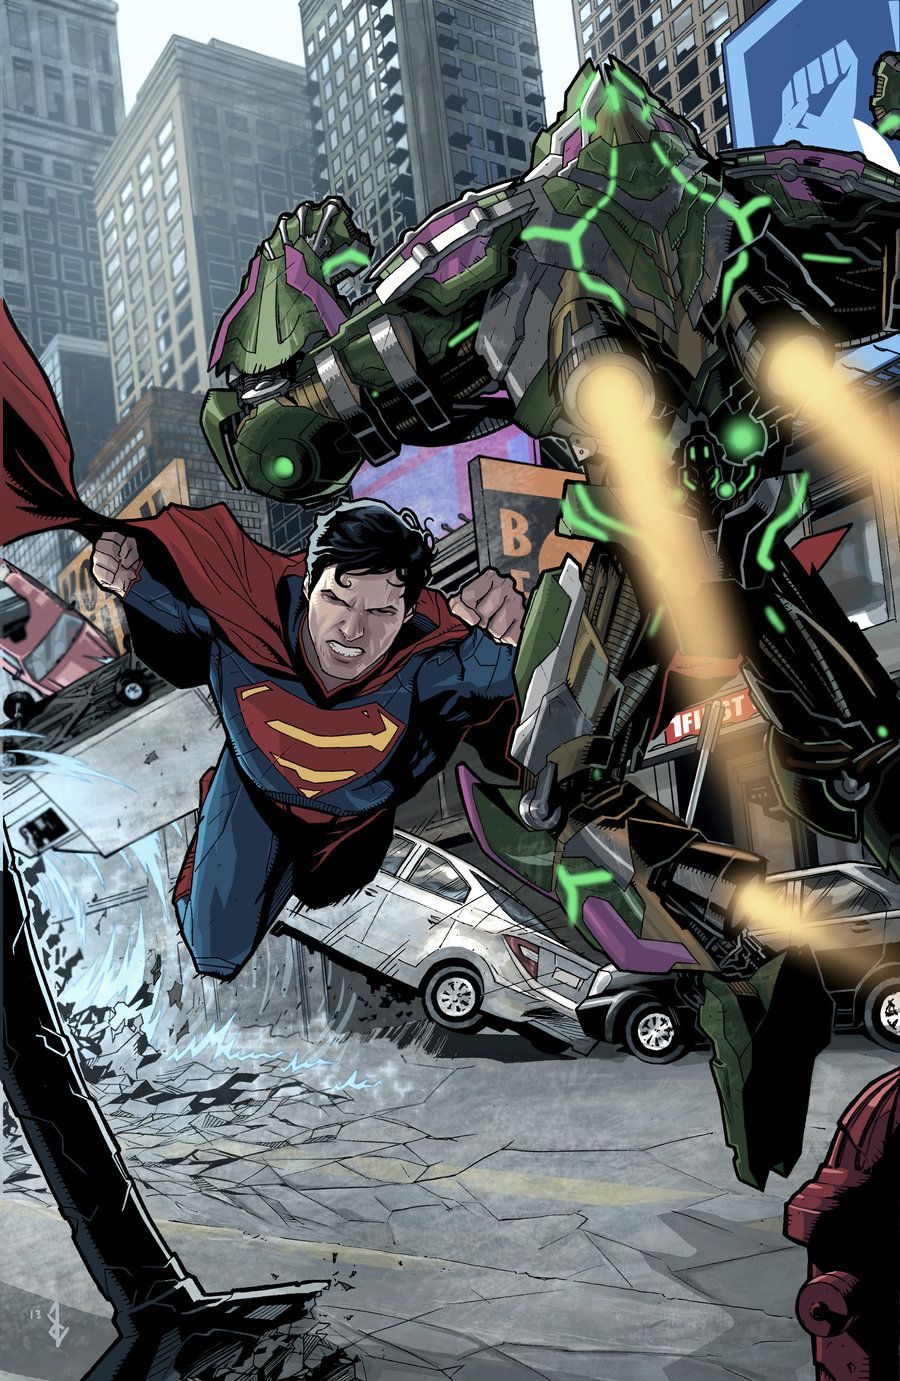 #Superman #Fan #Art. (Superman versus Lex) By: Bentti Bisson. (THE * 5 * STÅR * ÅWARD * OF: * AW YEAH, IT'S MAJOR ÅWESOMENESS!!!™)[THANK U 4 PINNING!!!<·><]<©>ÅÅÅ+(OB4E)